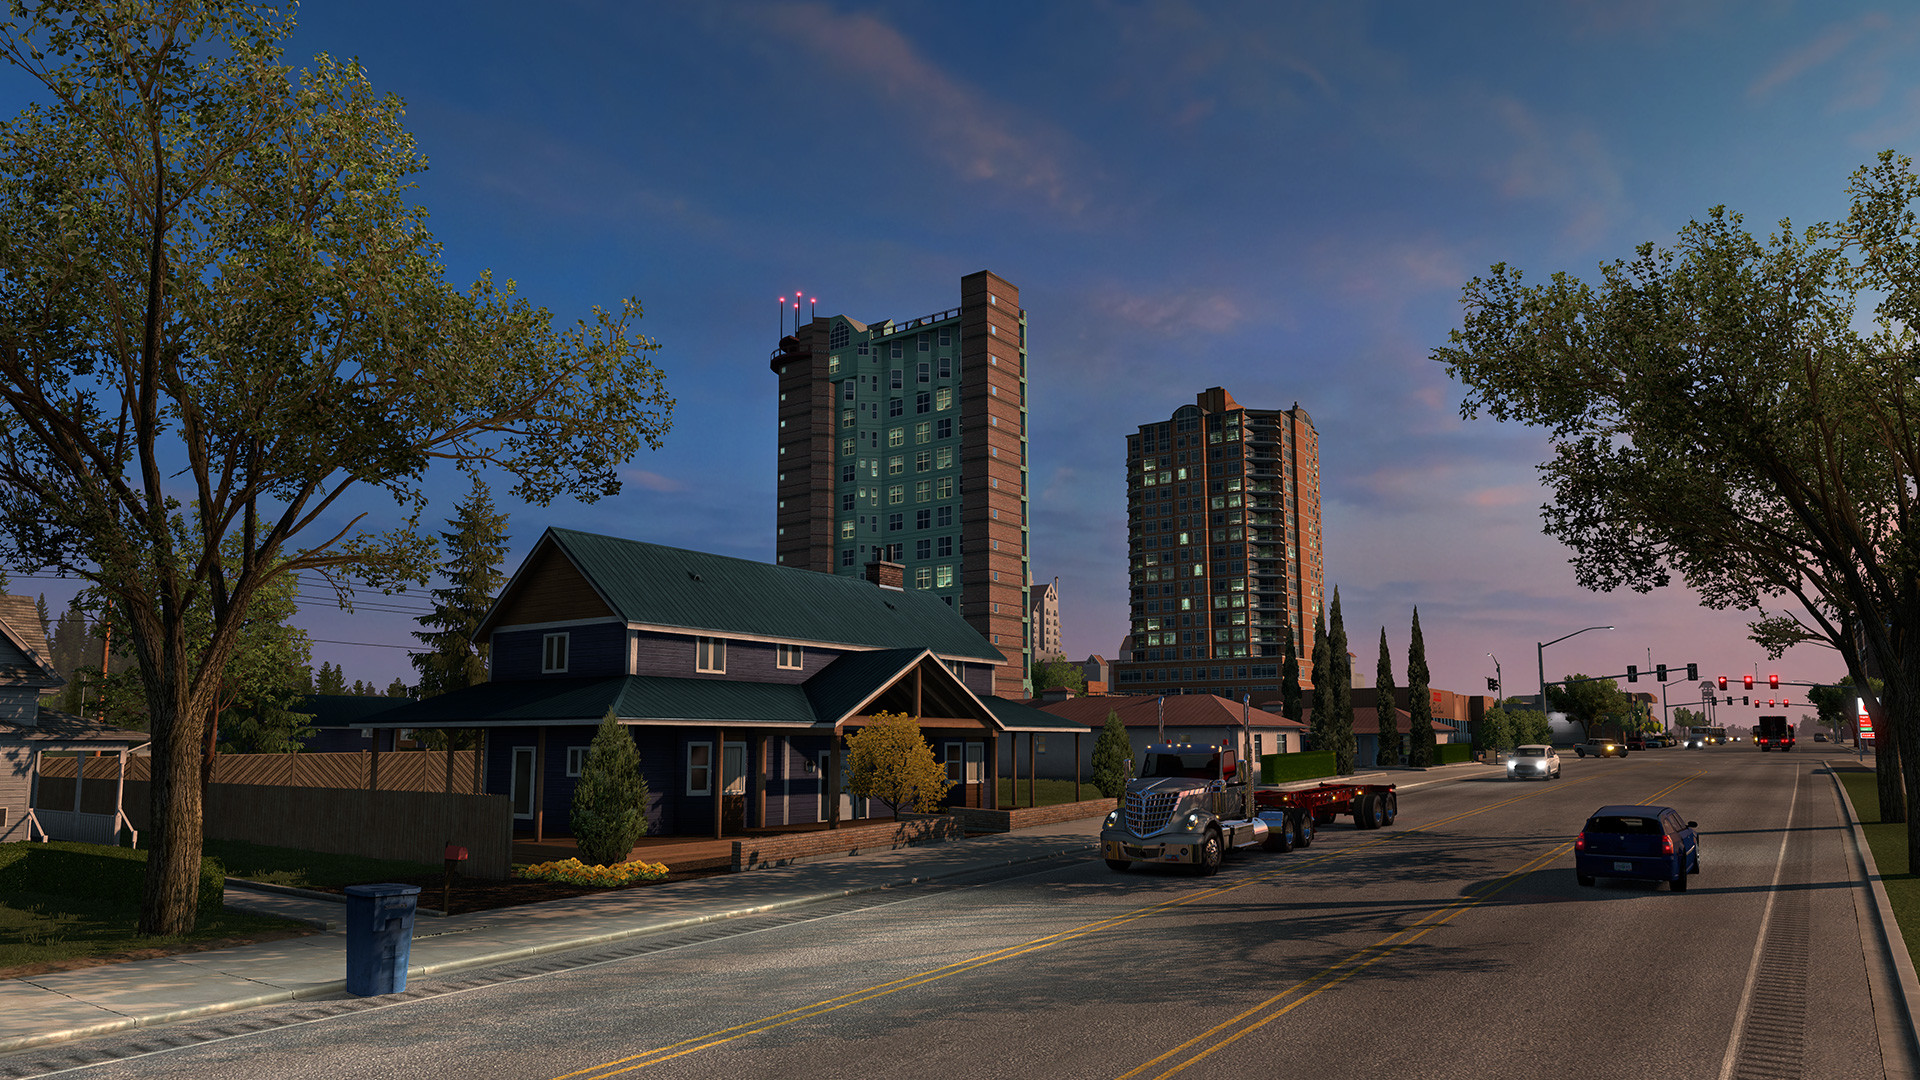 American Truck Simulator - Idaho on Steam